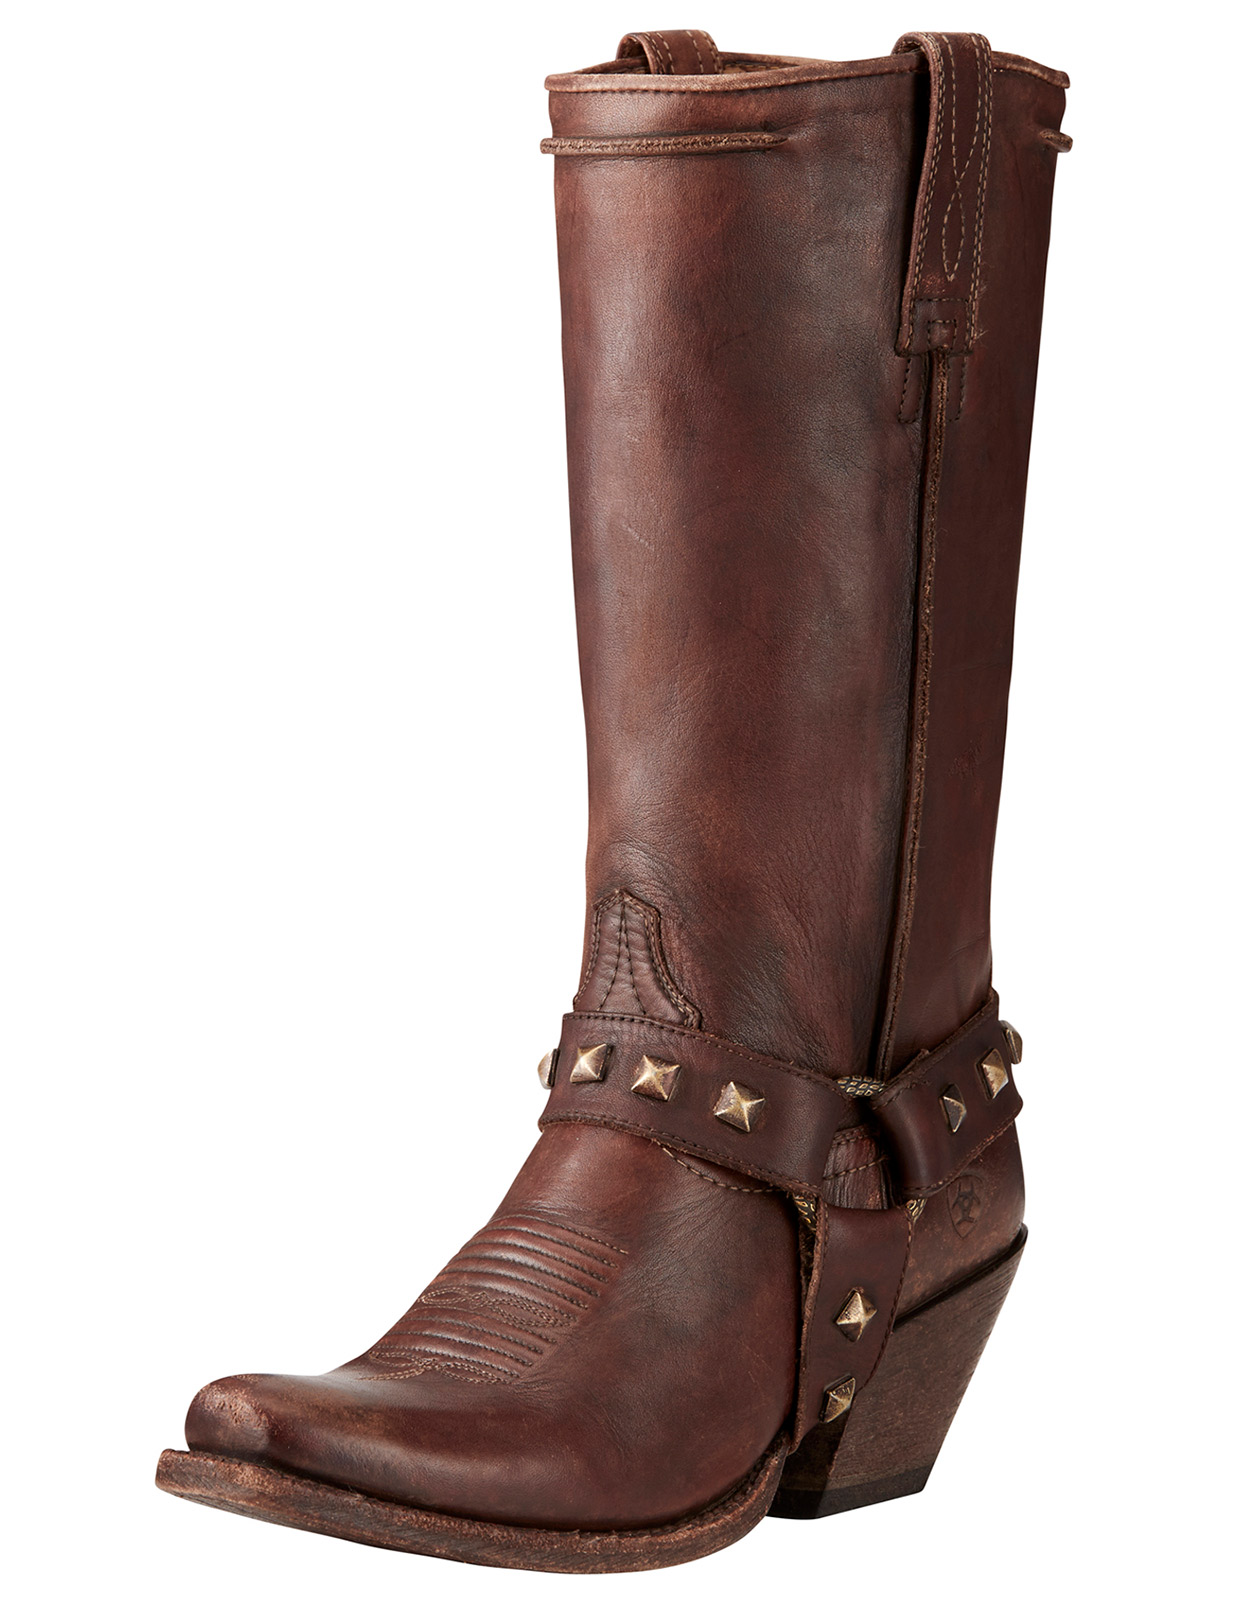 Ariat Women's Rowan Harness 12